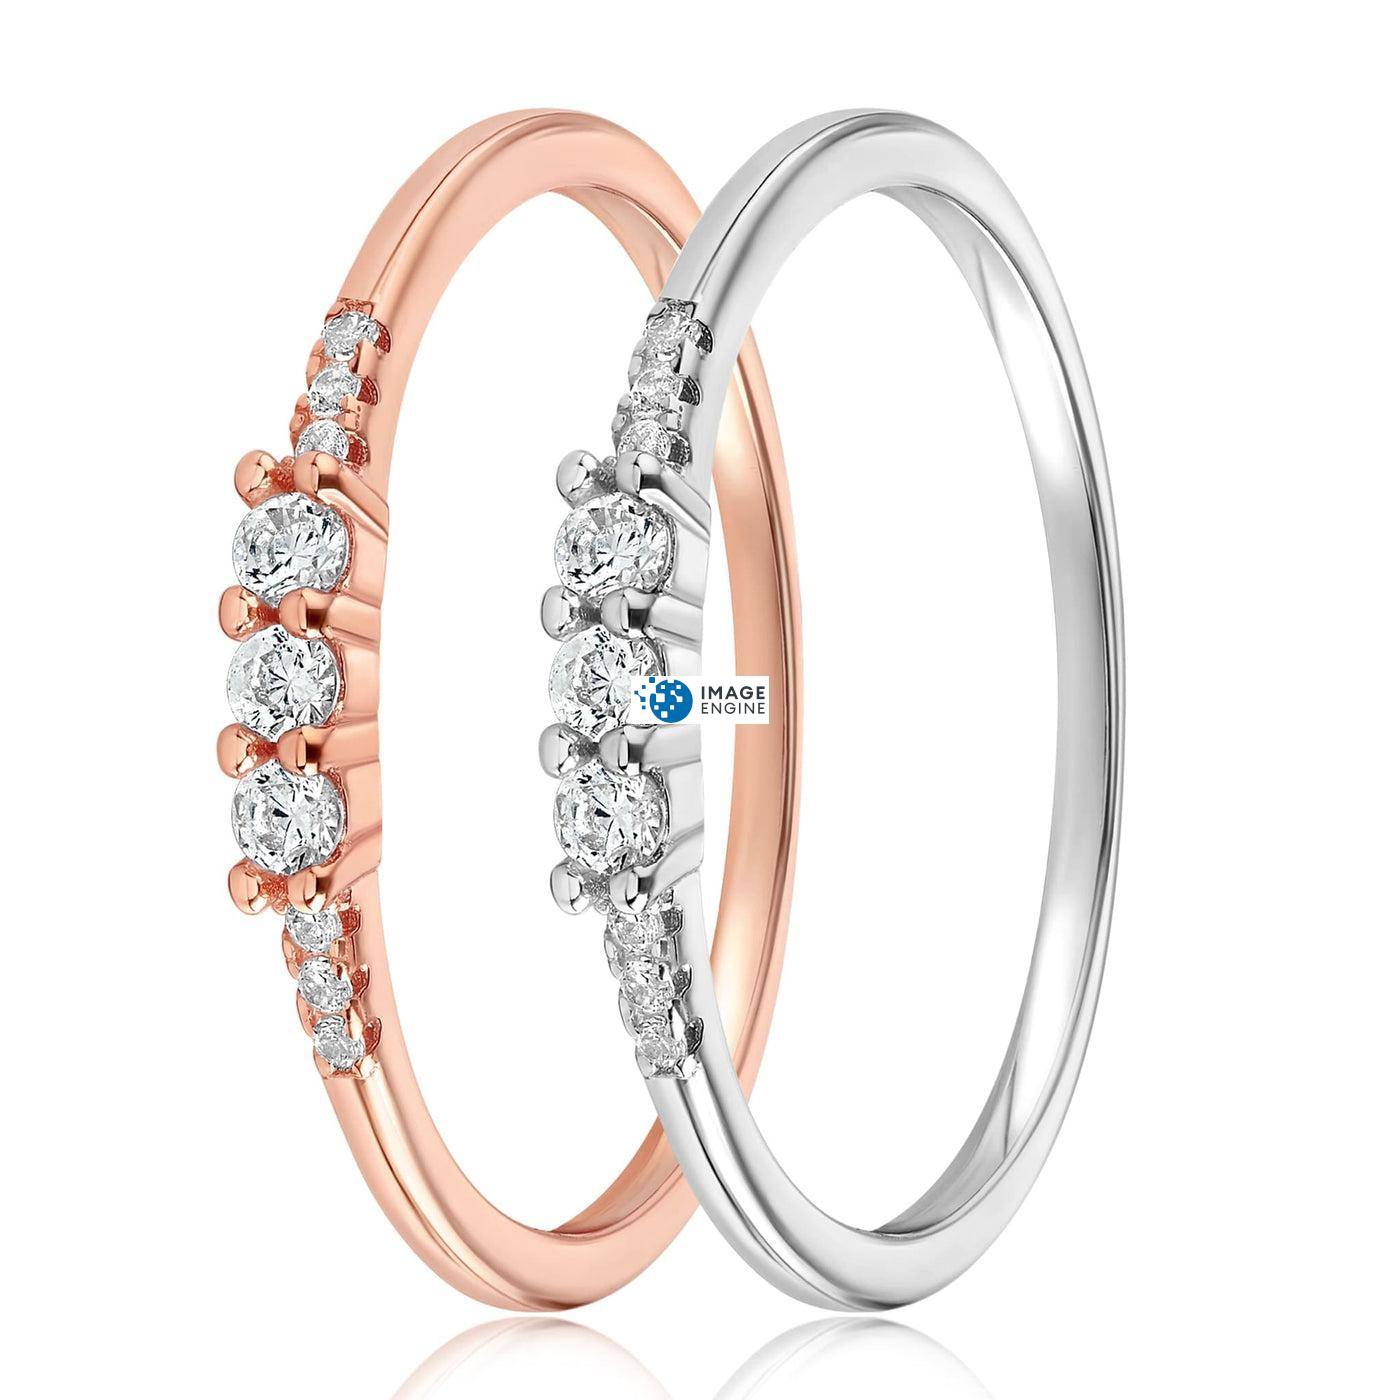 Emie Ring - Side by Side - 18K Rose Gold Vermeil and 925_Sterling_Silver .jpg